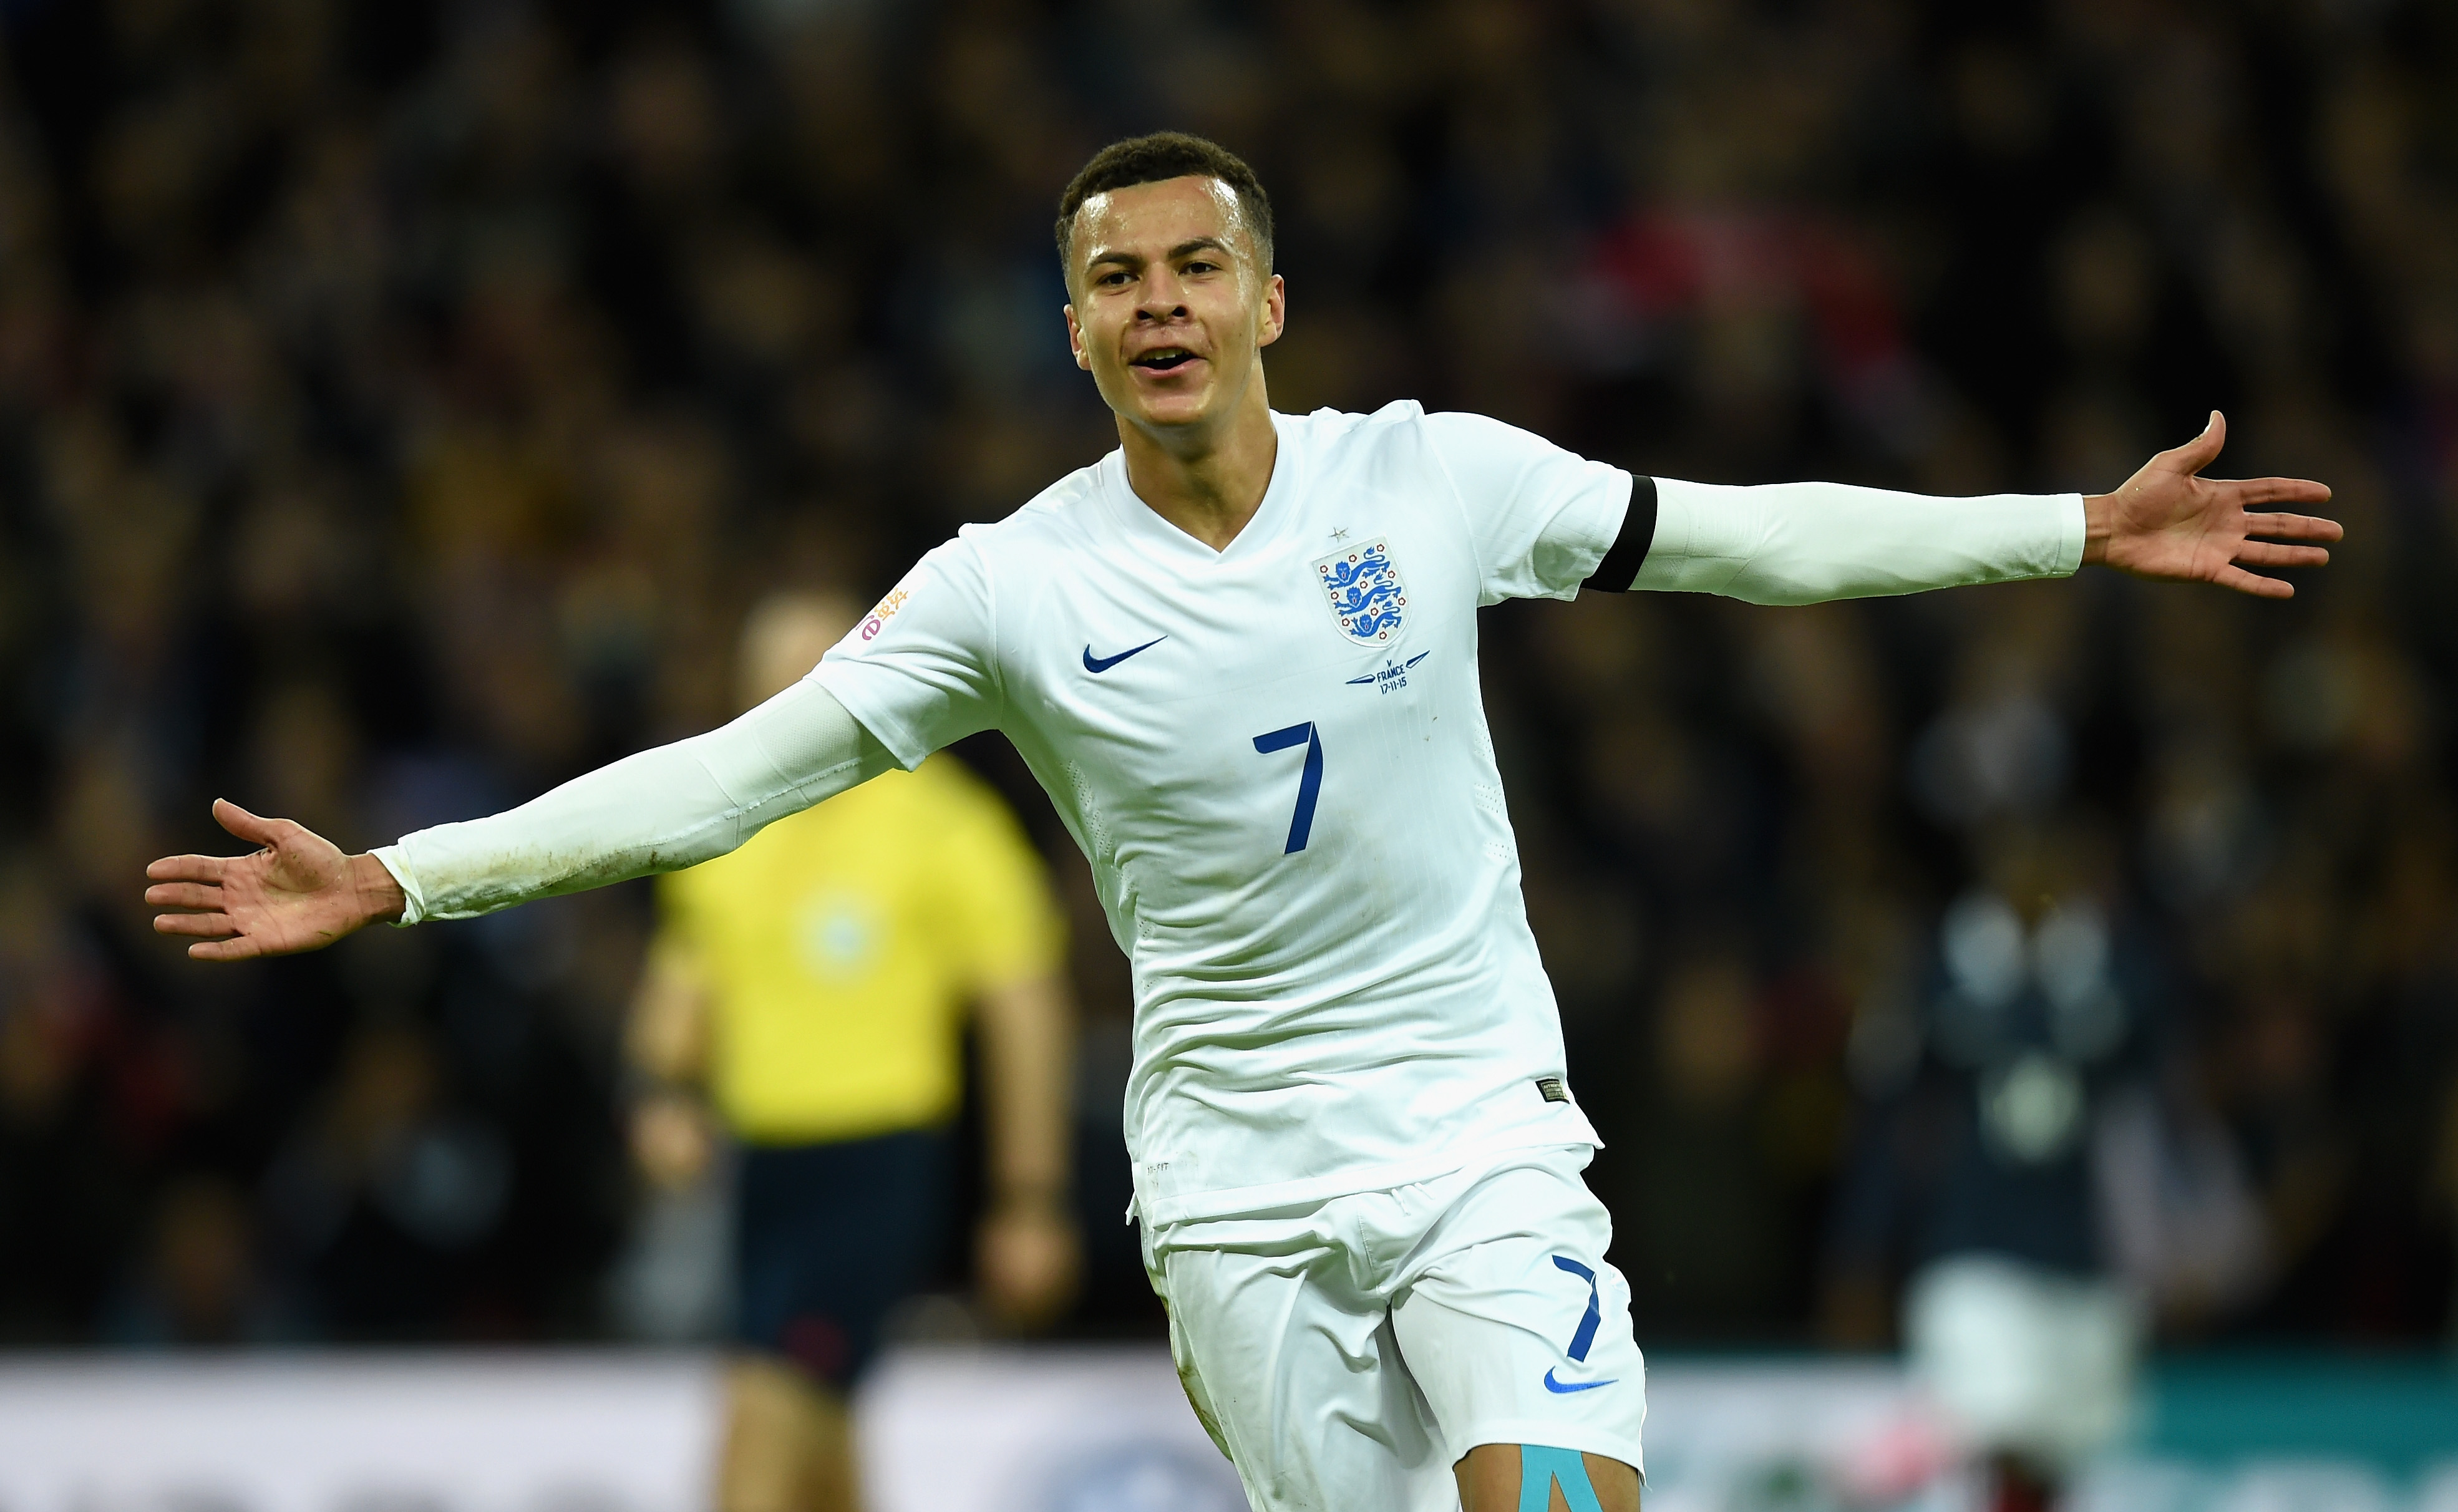 Paul Ince calls for calm over 'immature' England star Dele Alli